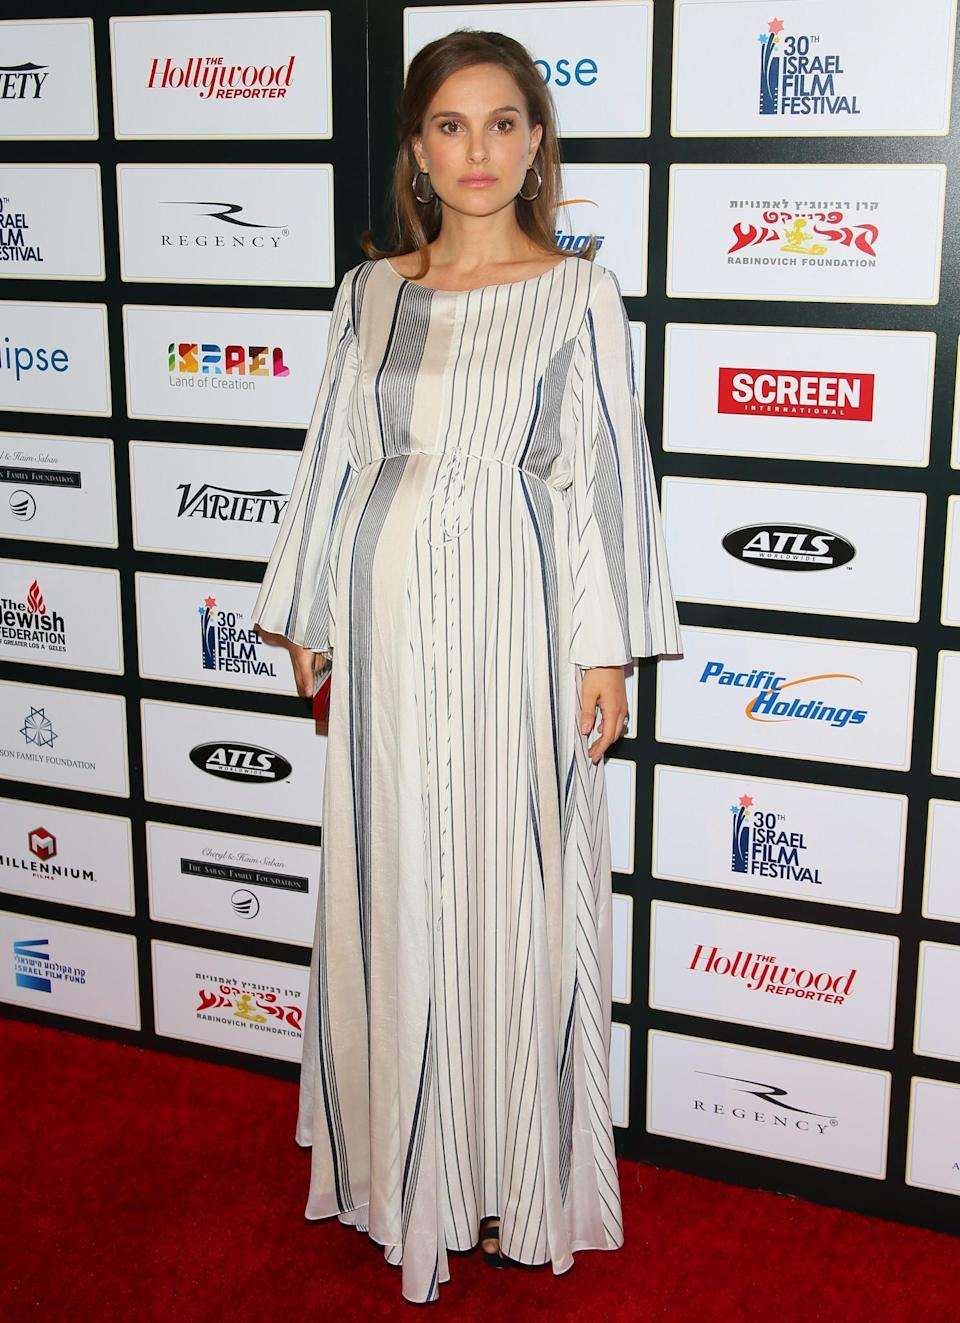 <p>Wearing a quietly elegant long-sleeved dress from The Row, Natalie defied overtly glamorous red carpet conventions at the Israel Film Festival's 30th anniversary dinner. [Photo: Getty] </p>